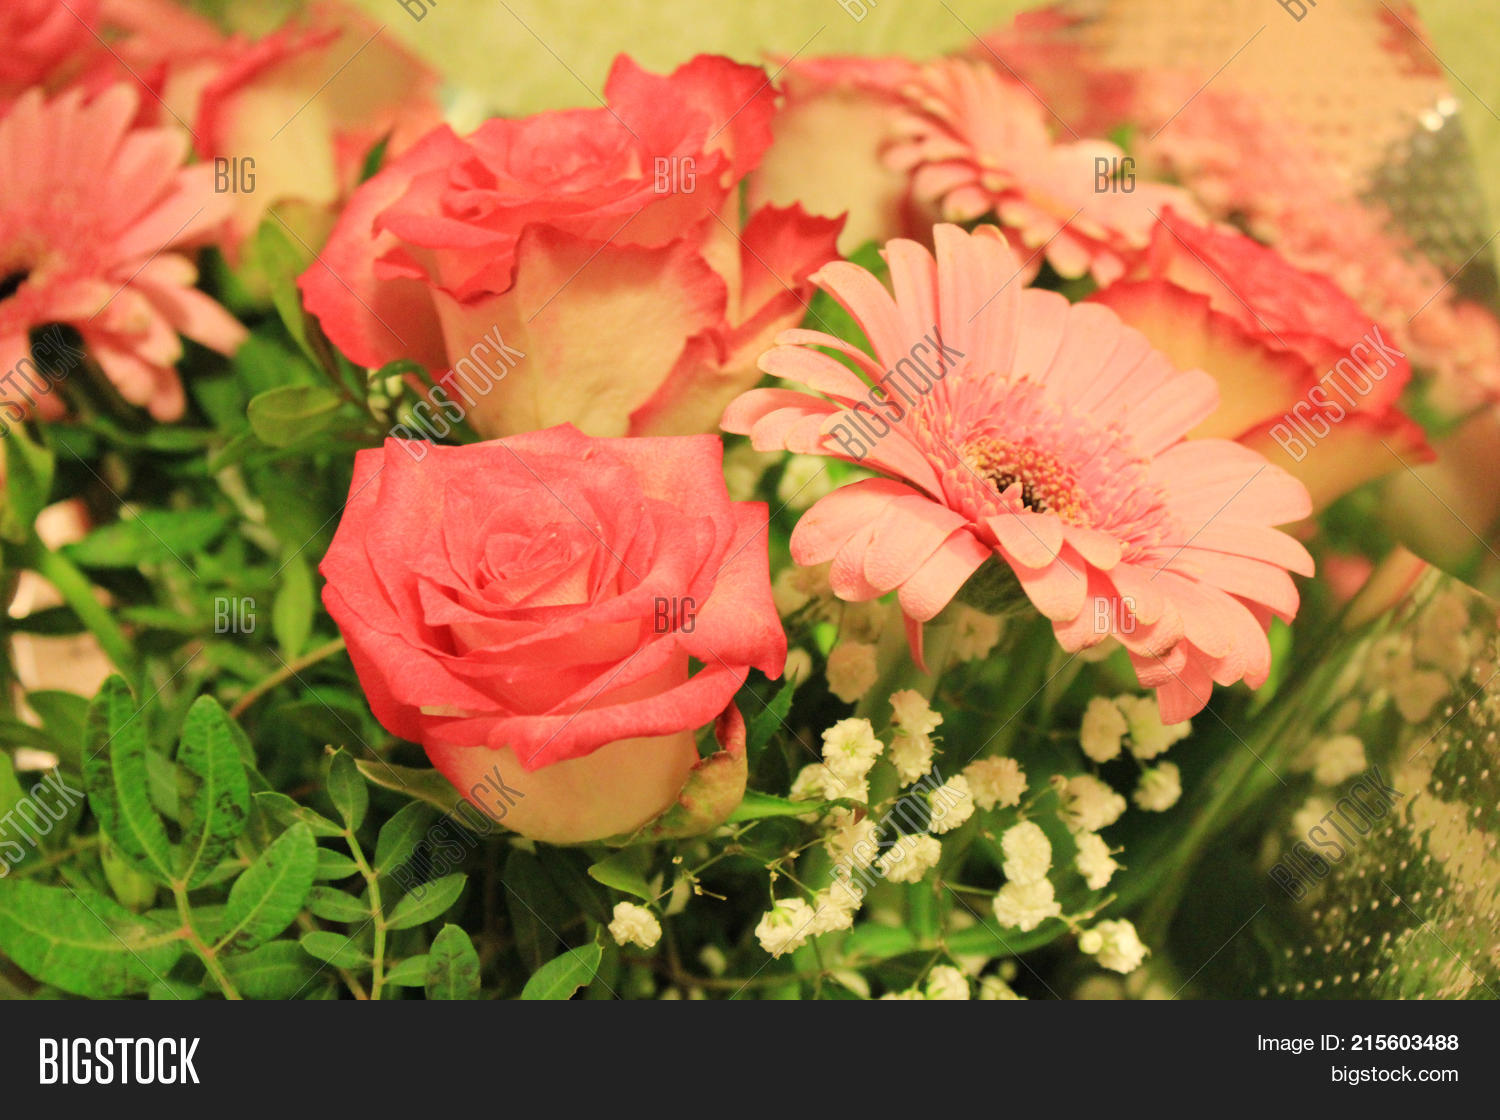 Roses gerbera daisy image photo free trial bigstock roses and gerbera daisy flower bouquet attractively arranged by red pink and white color izmirmasajfo